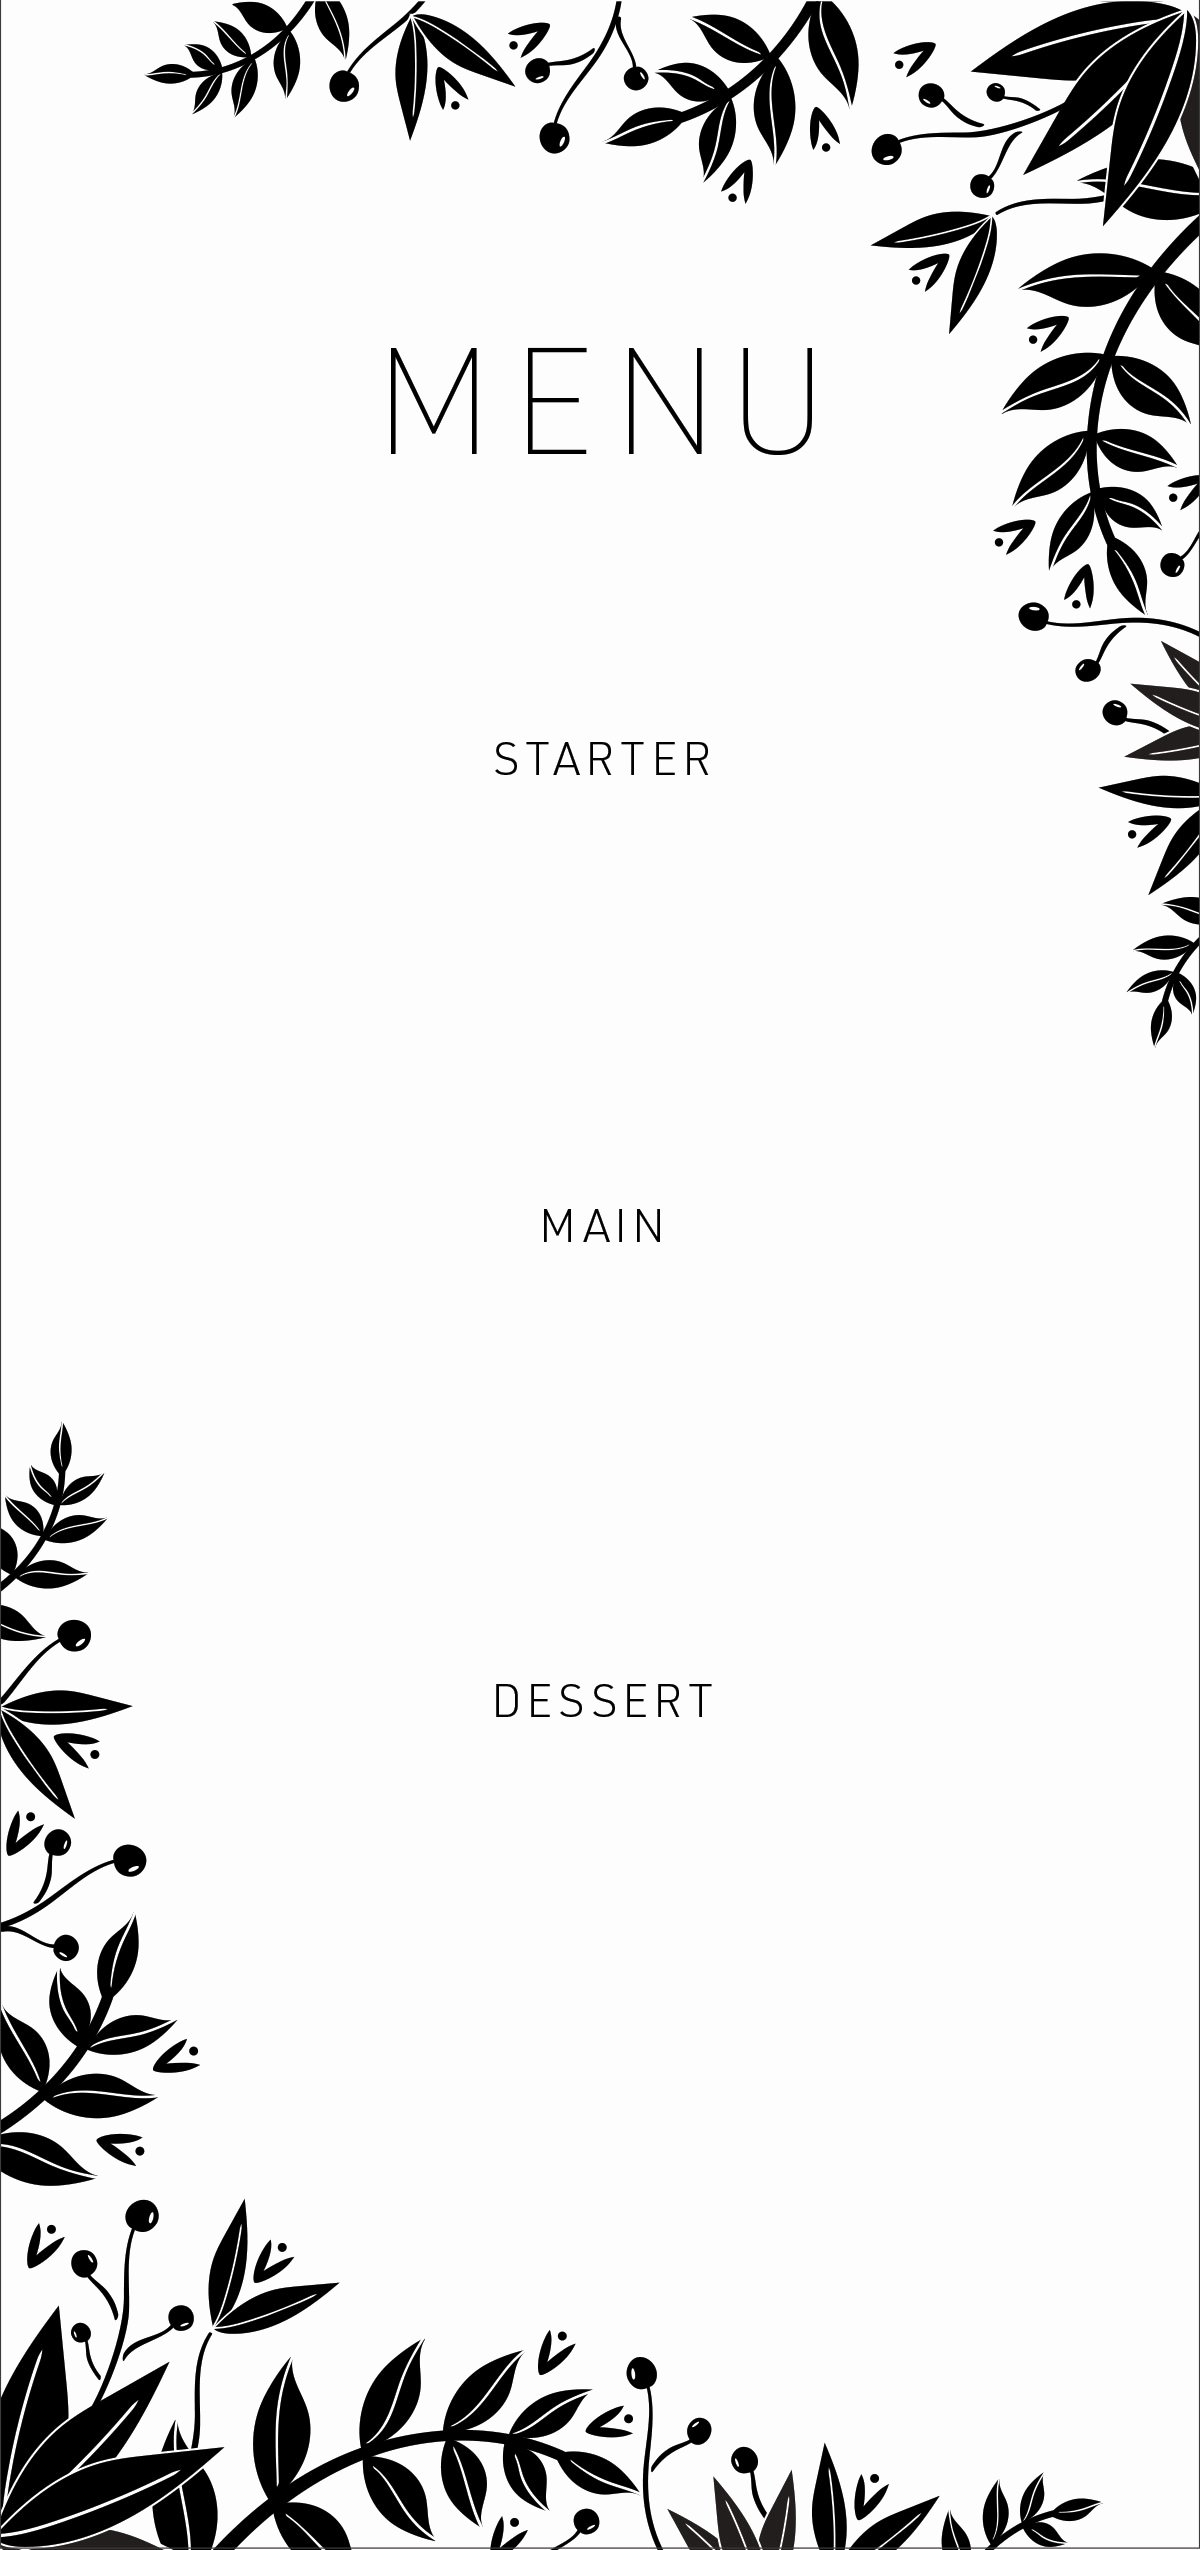 Dinner Party Menu Template Awesome 20 Dinner Party Ideas Free Customizable Menus